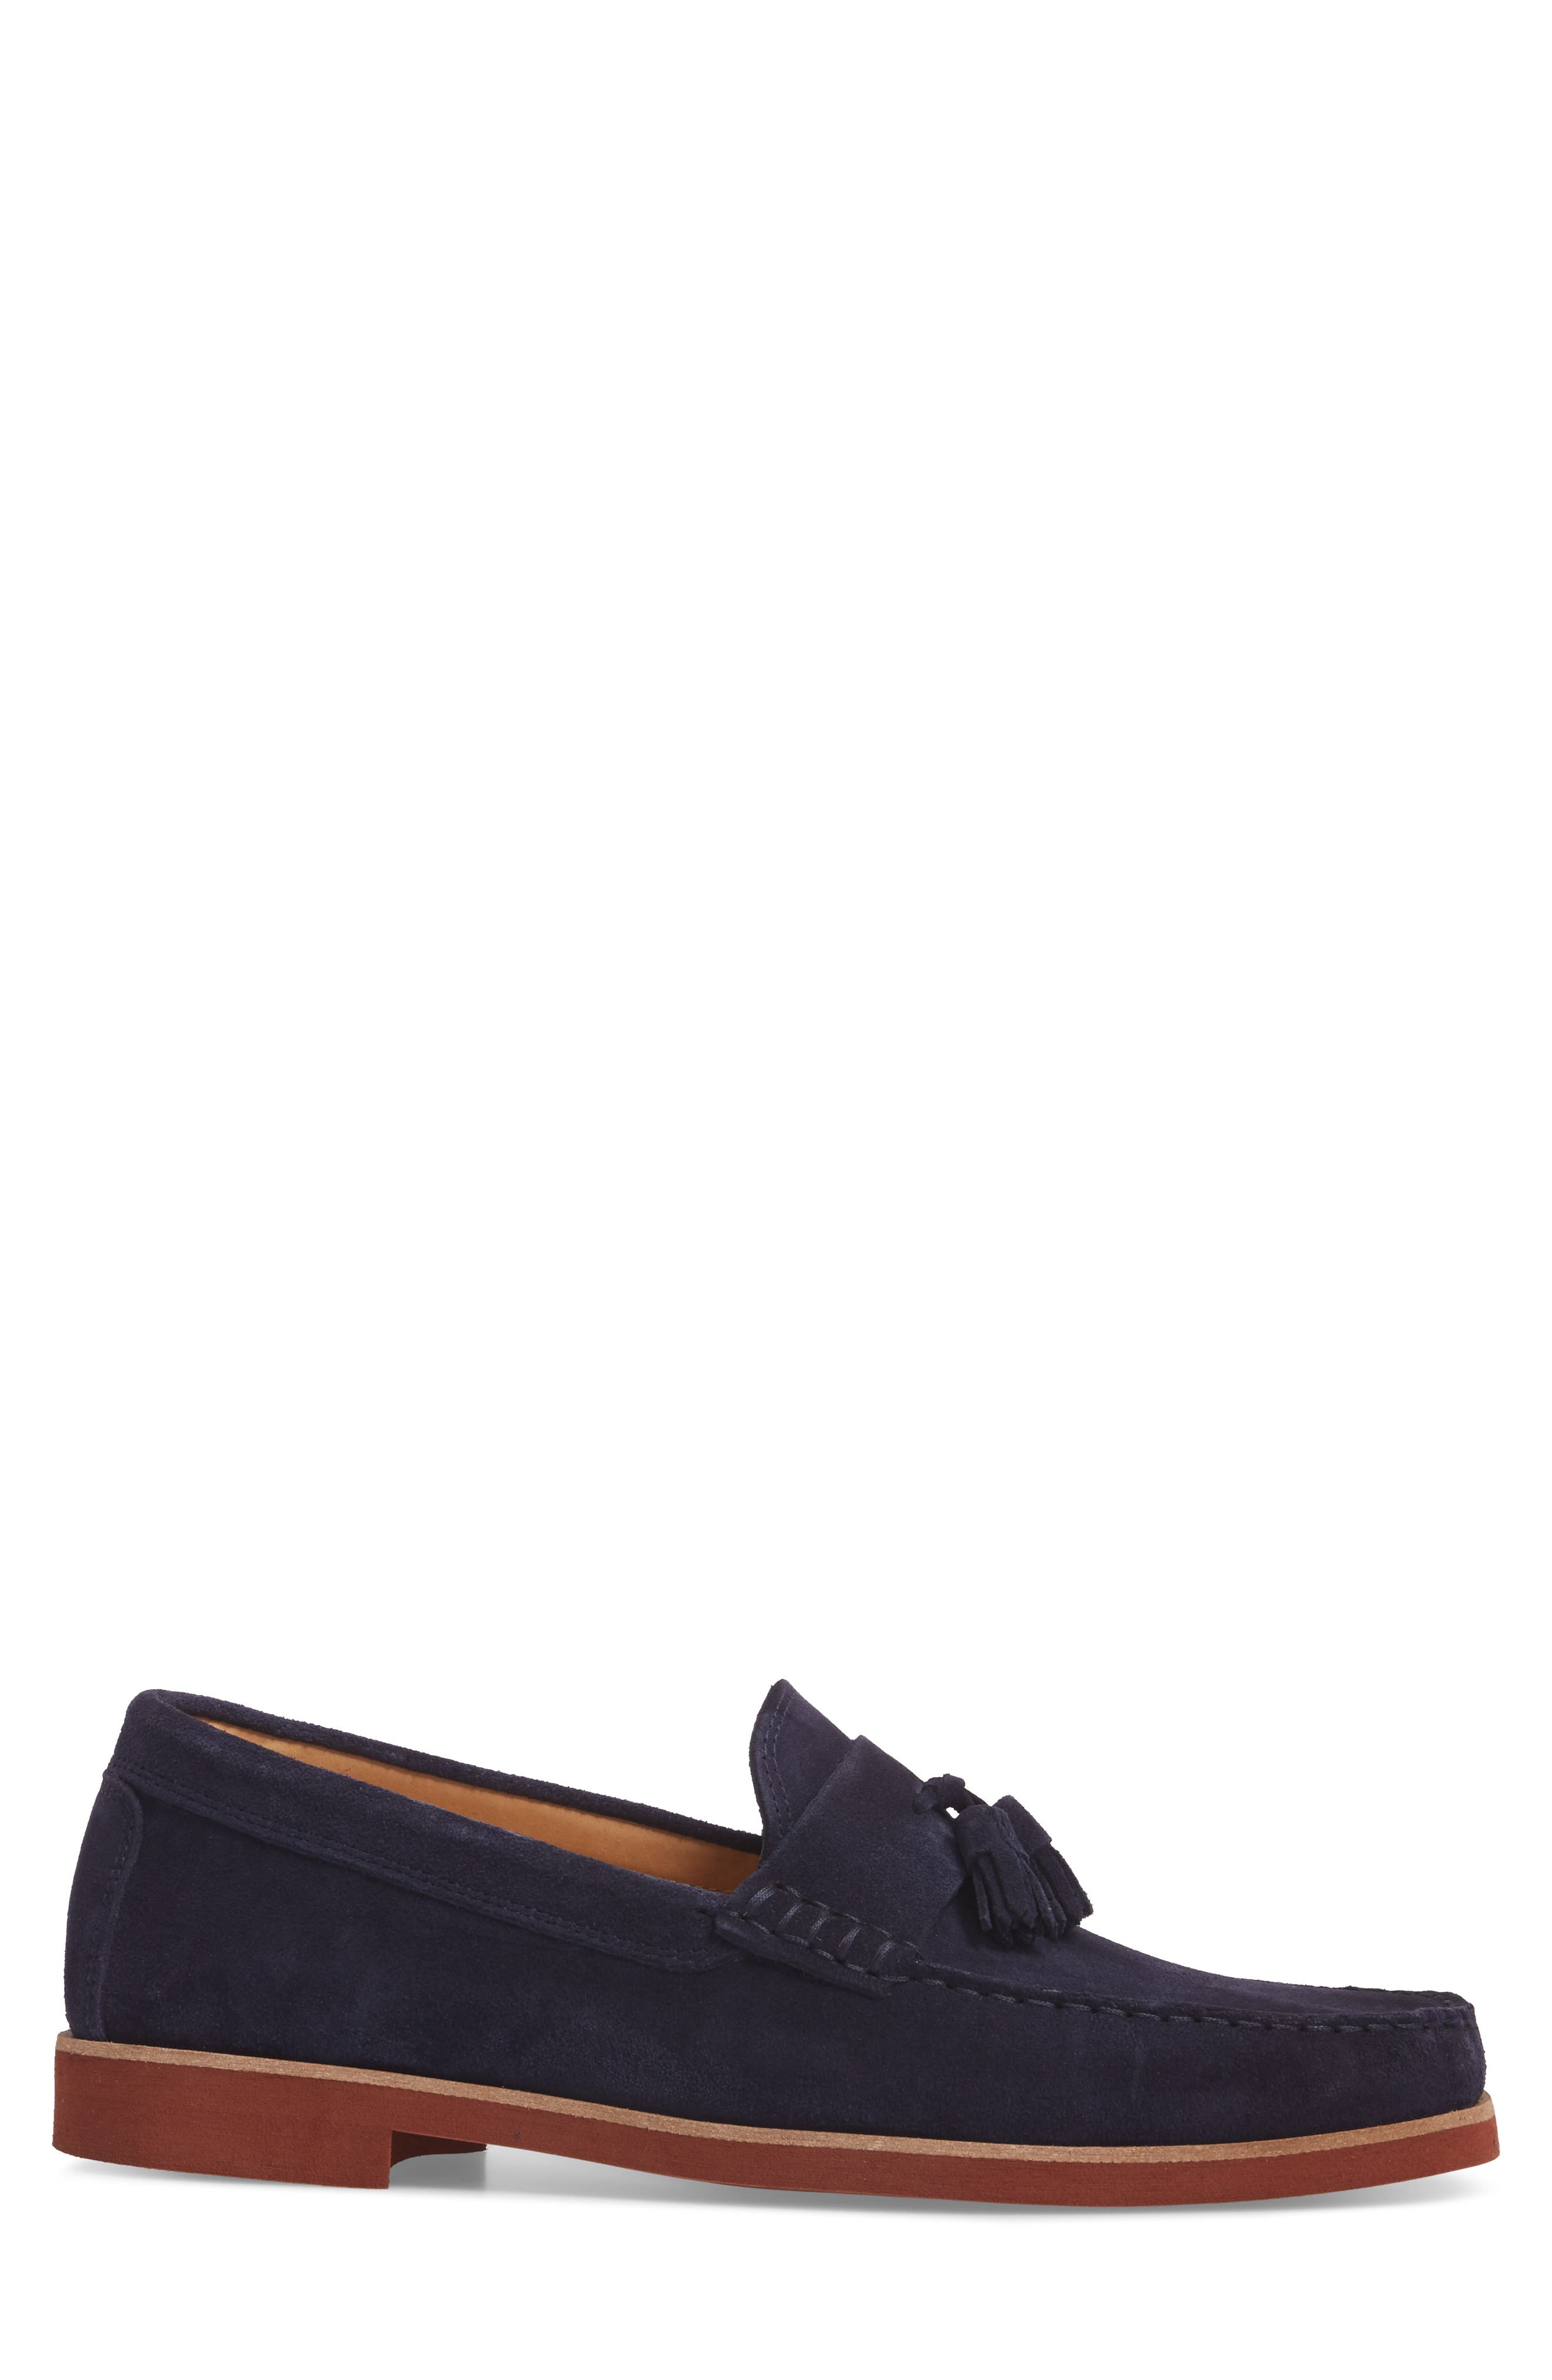 Stowes Tassel Loafer,                             Alternate thumbnail 3, color,                             410